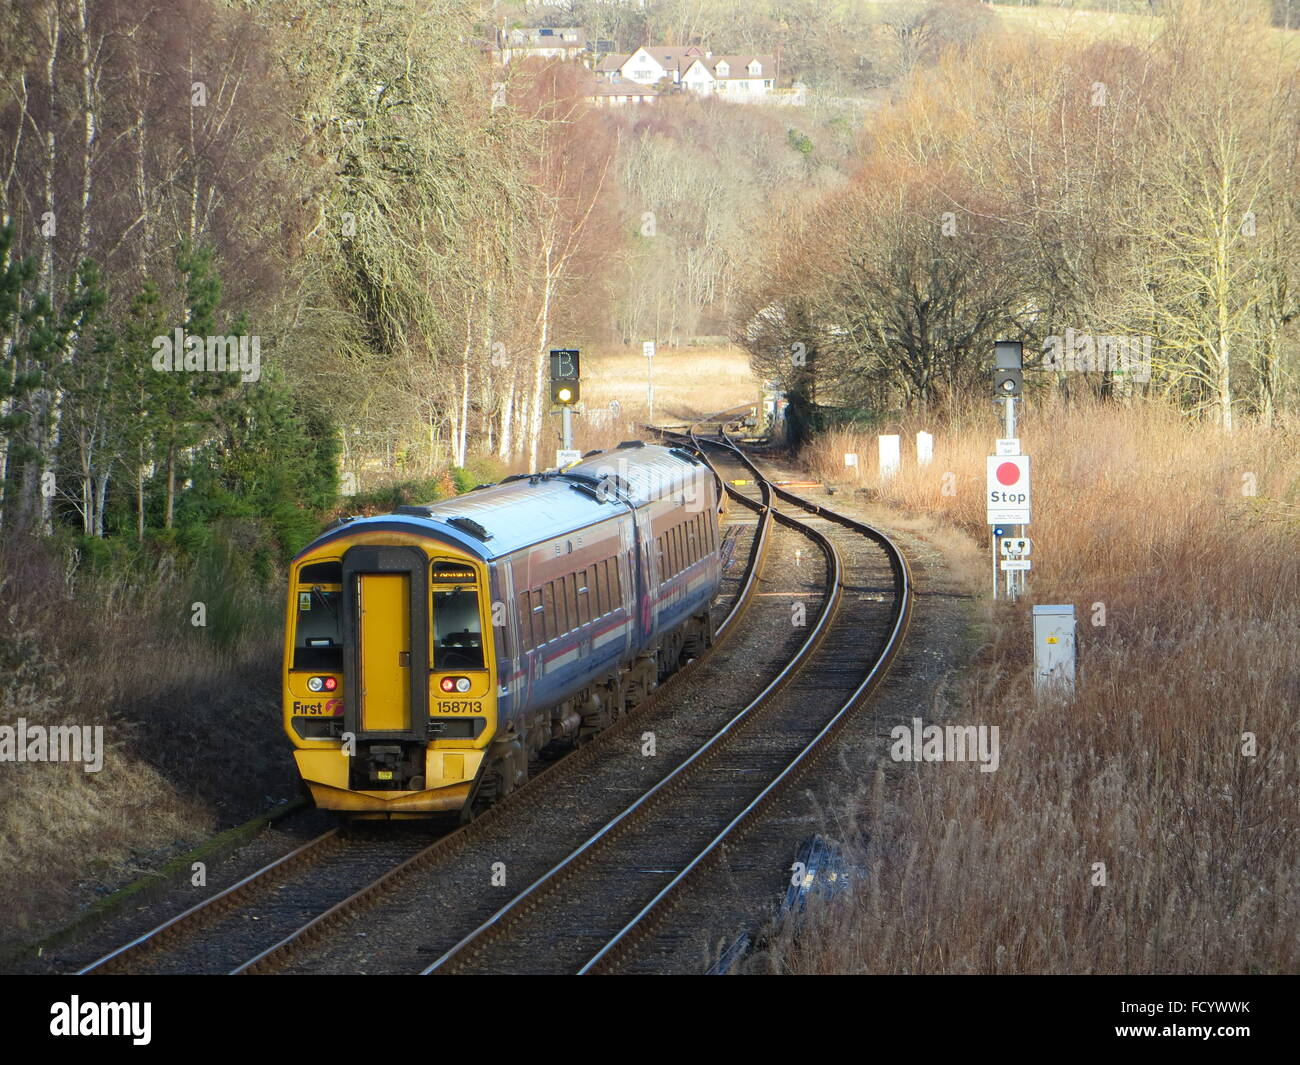 A Scot Rail train leaves Dingwall Station in the Scottish Highlands. - Stock Image